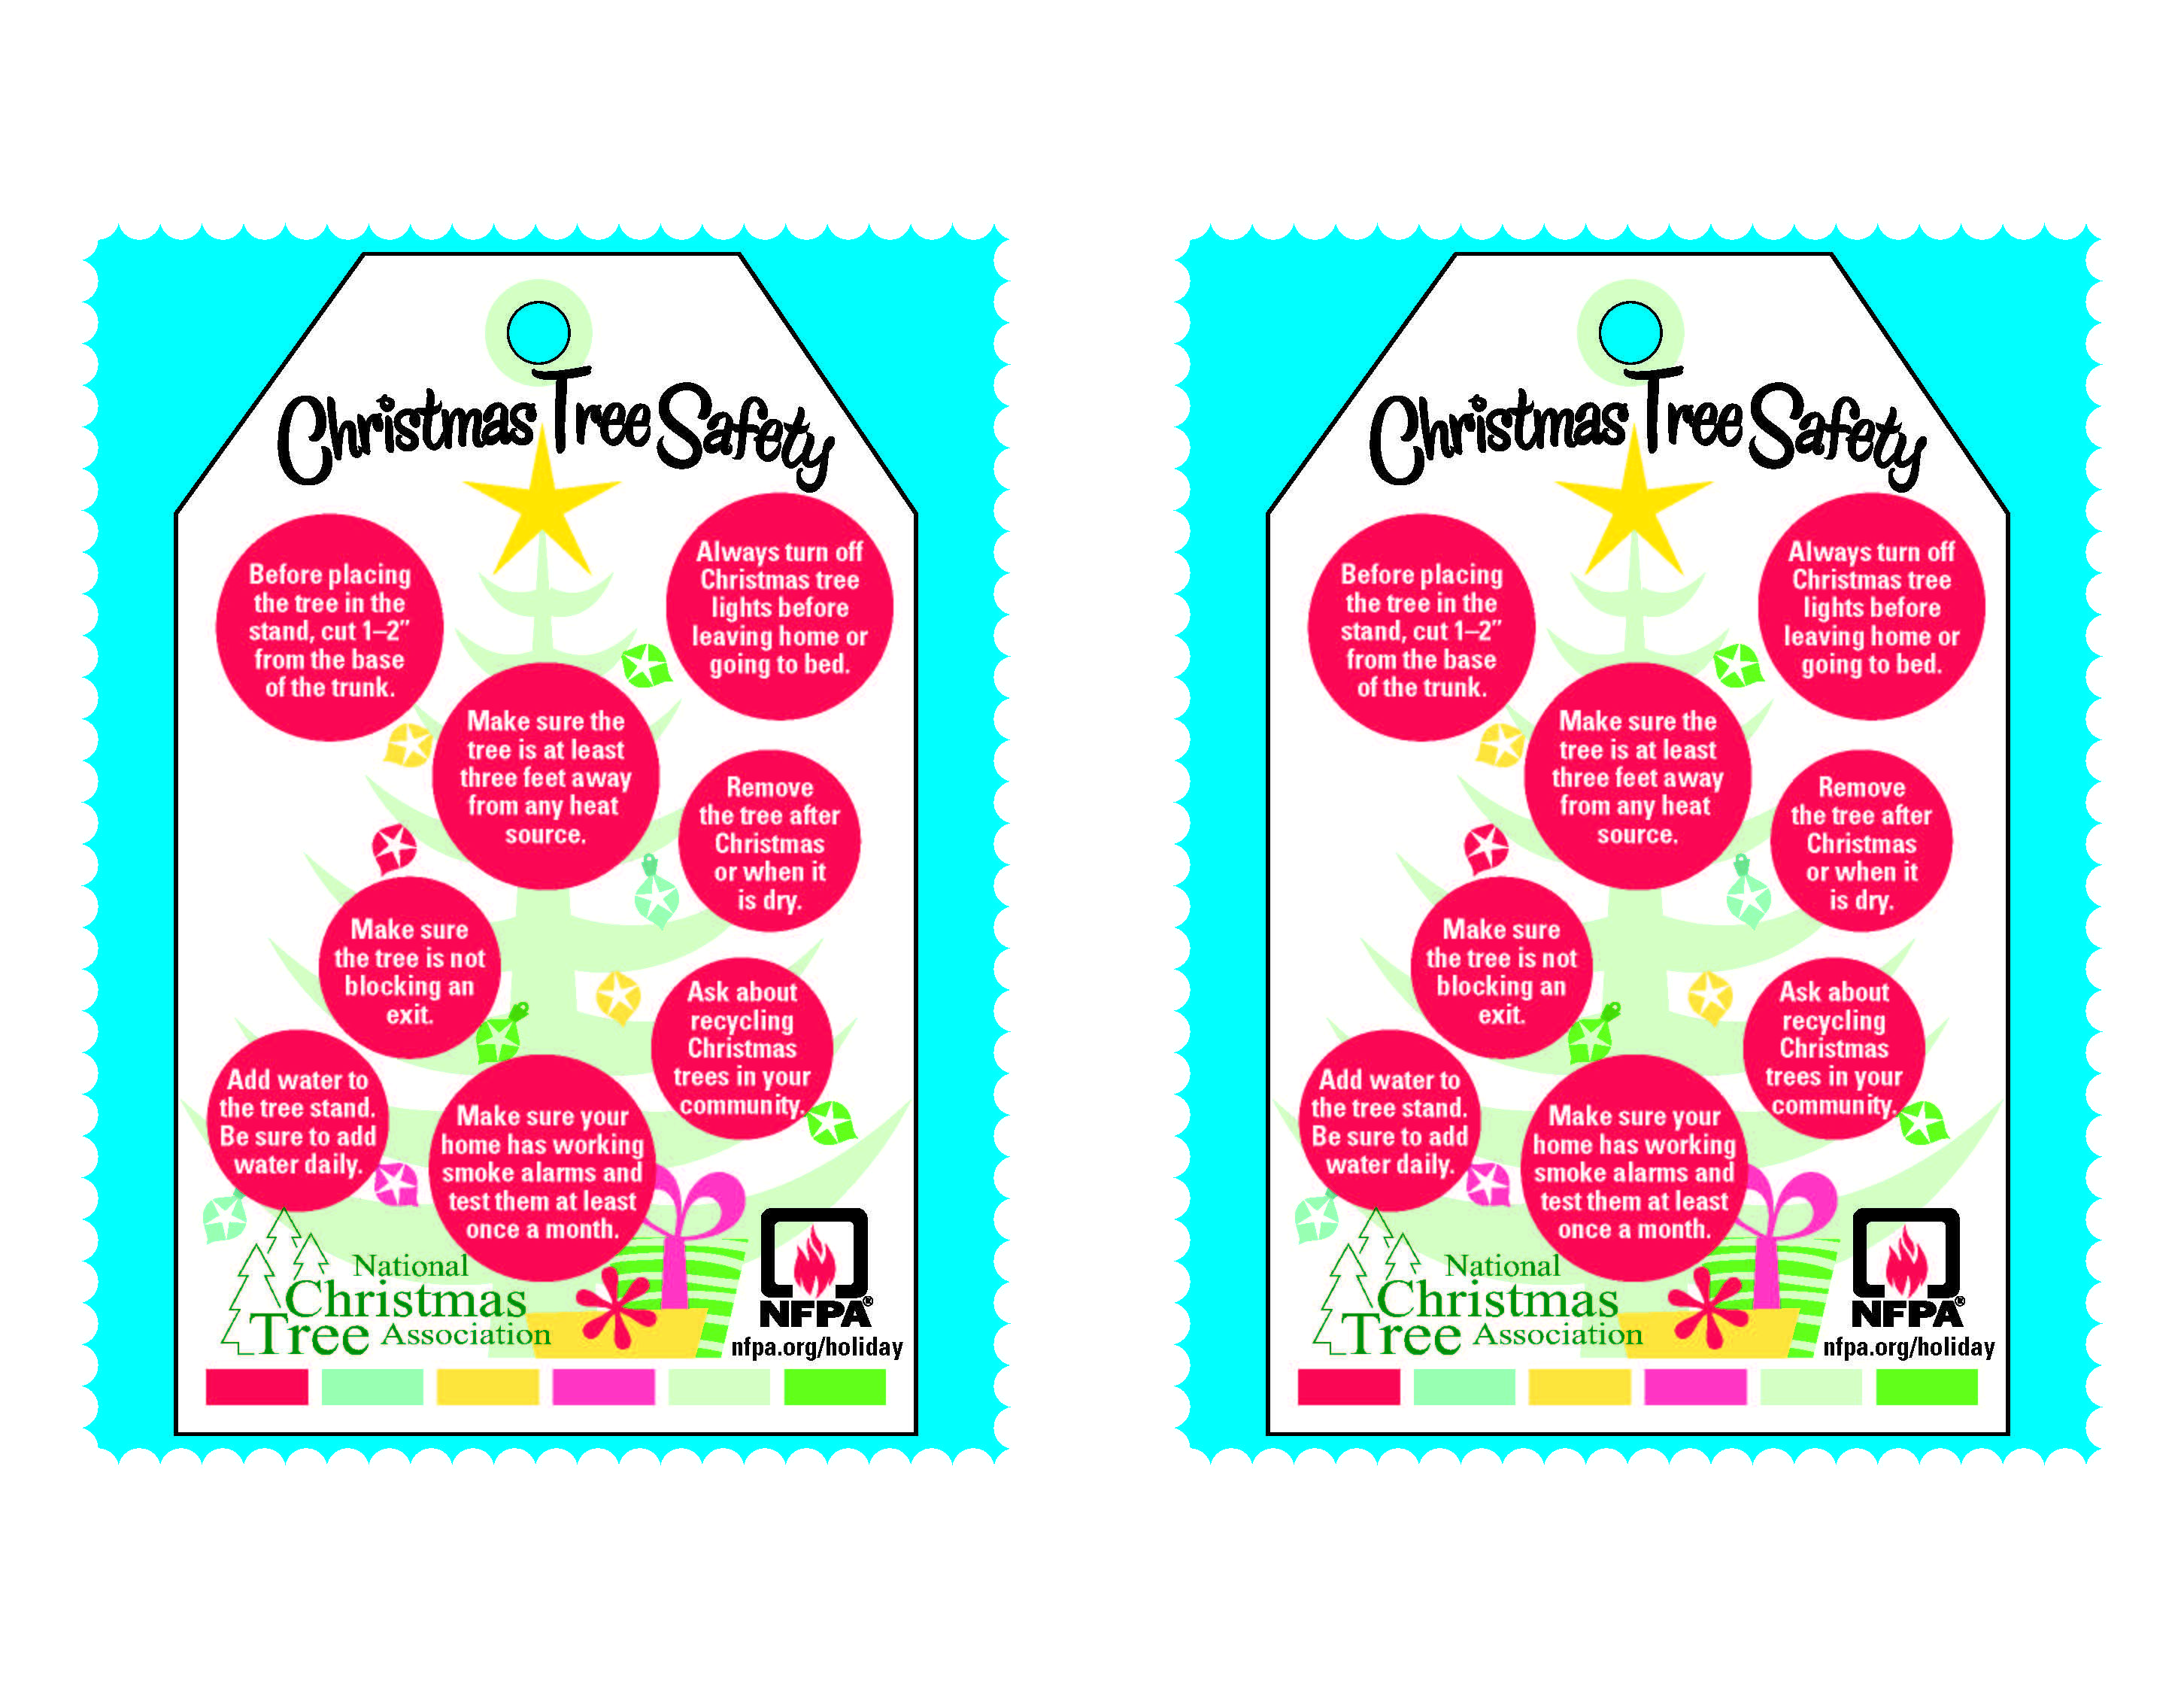 Printable Christmas tree tags with fire safety tips from